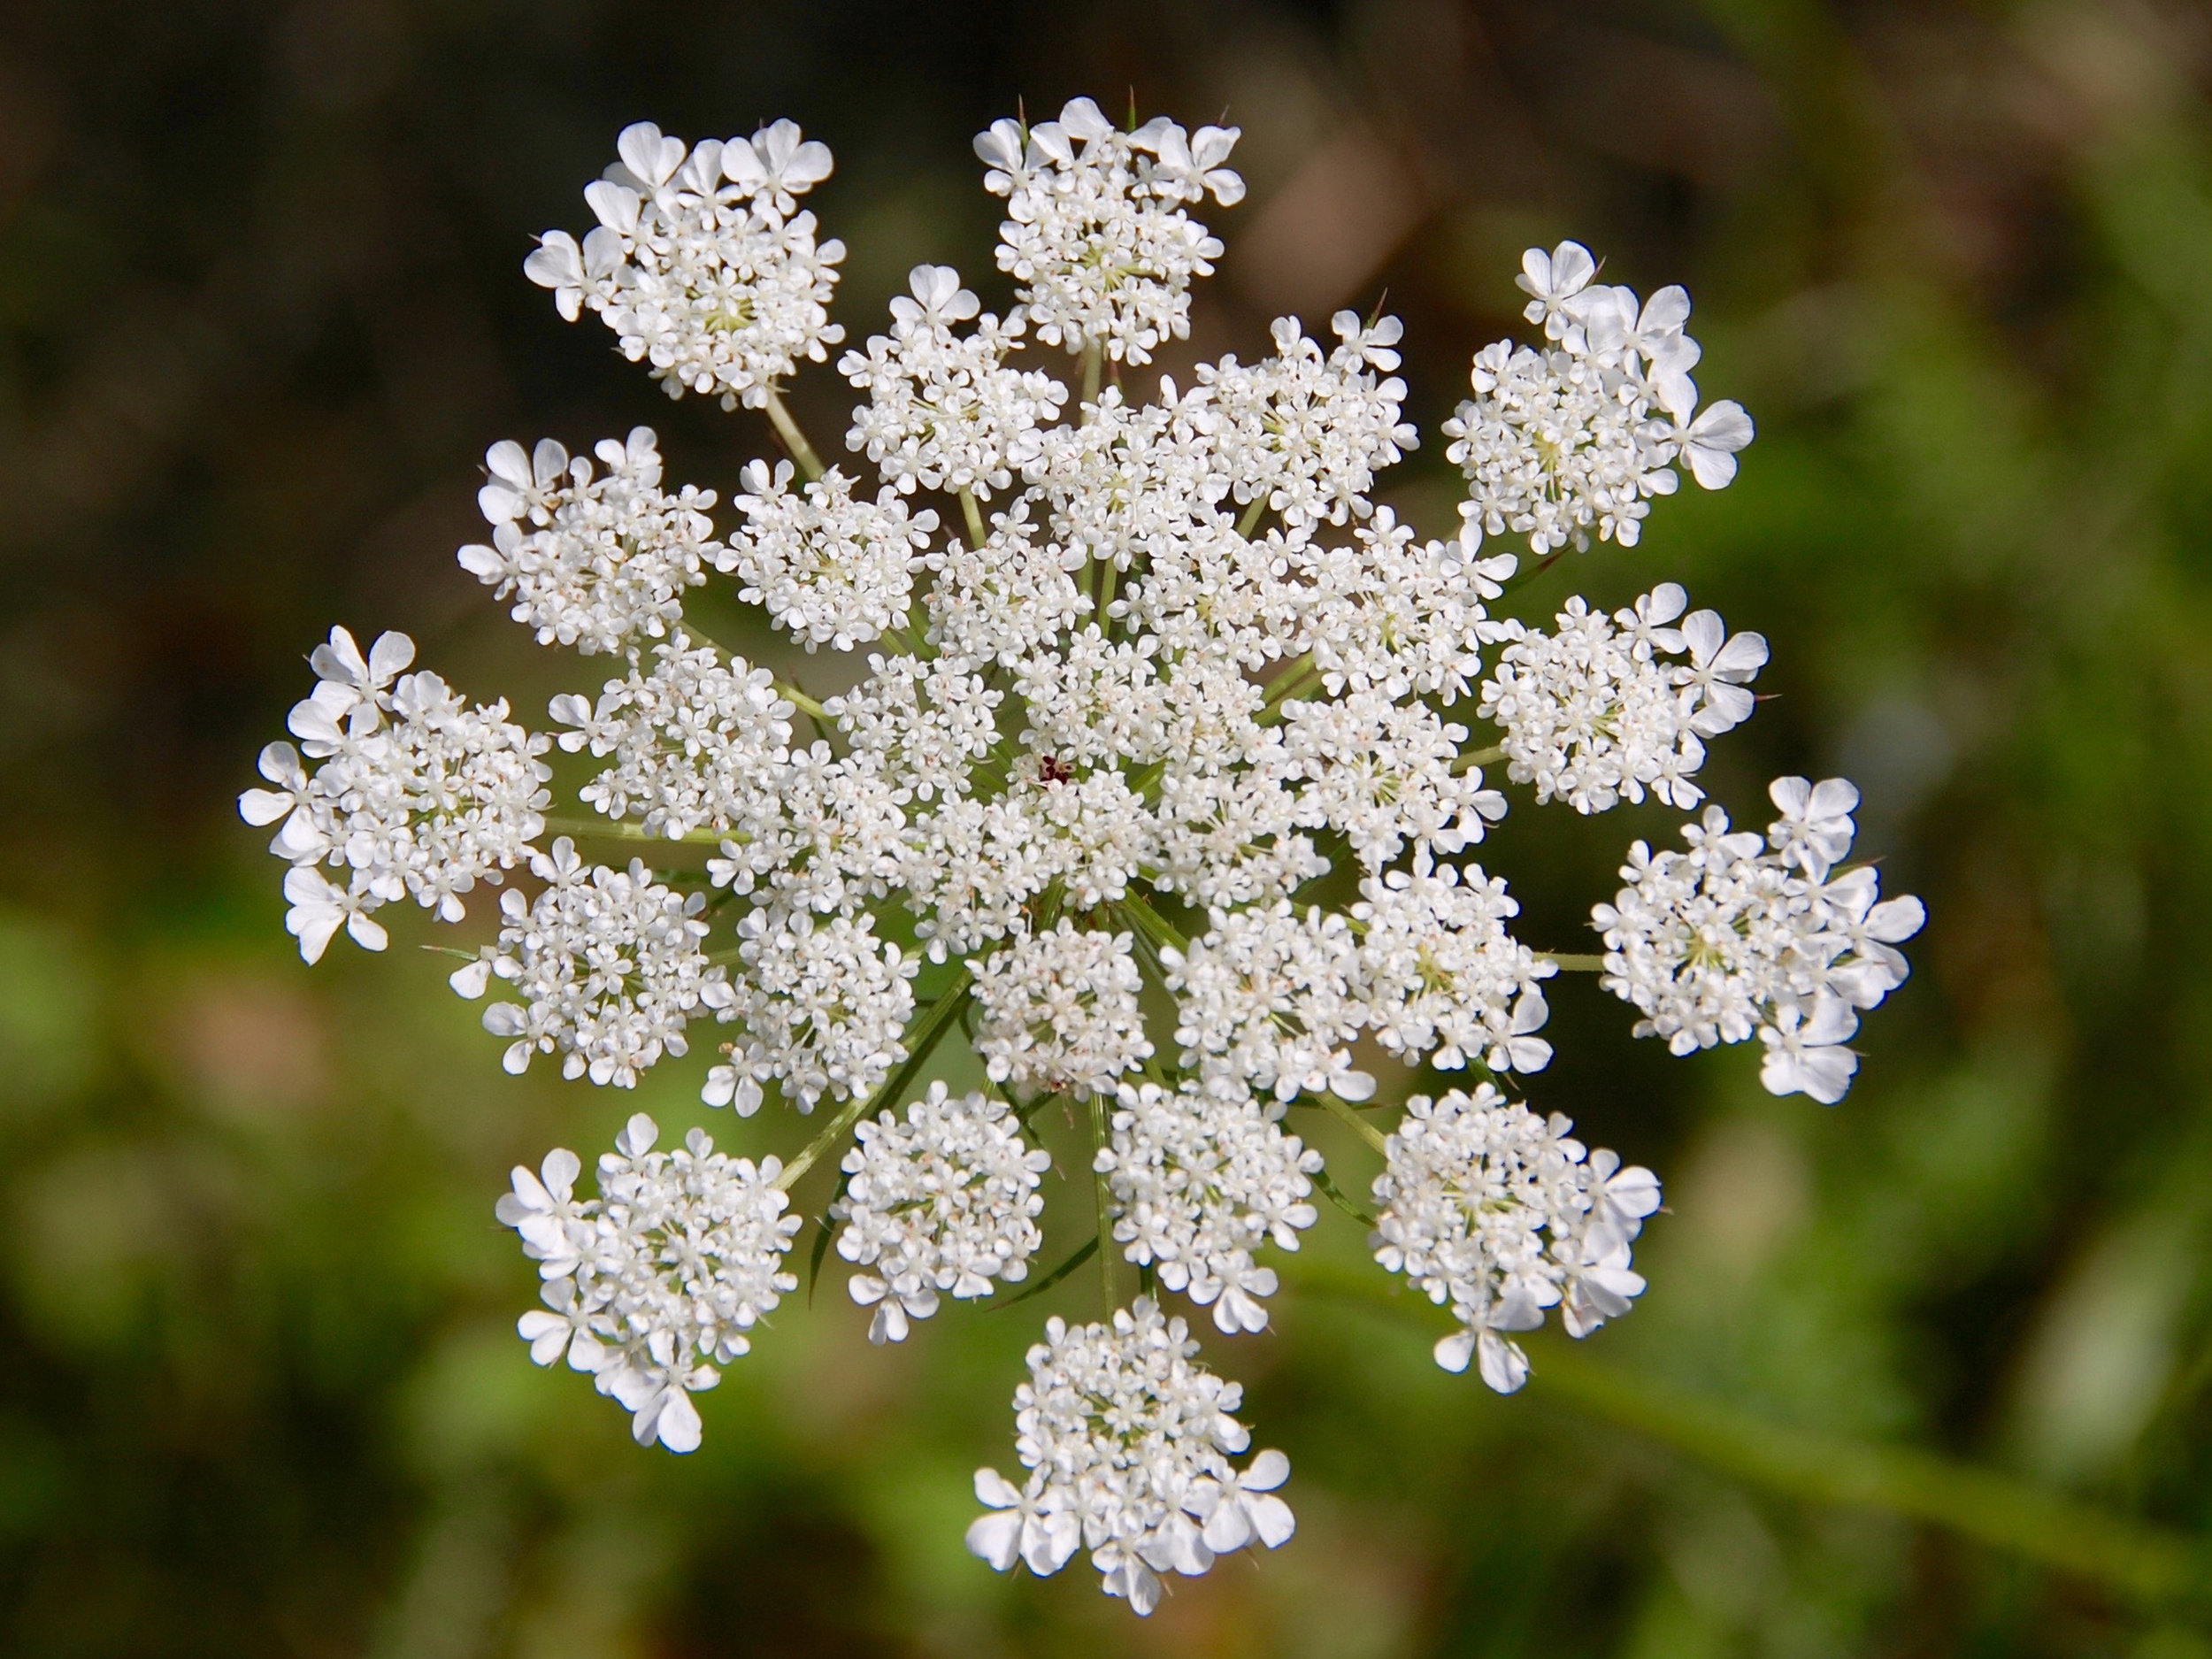 Queen Anne's Lace, a.k.a. wild carrot, bird's nest, or bishop's lace